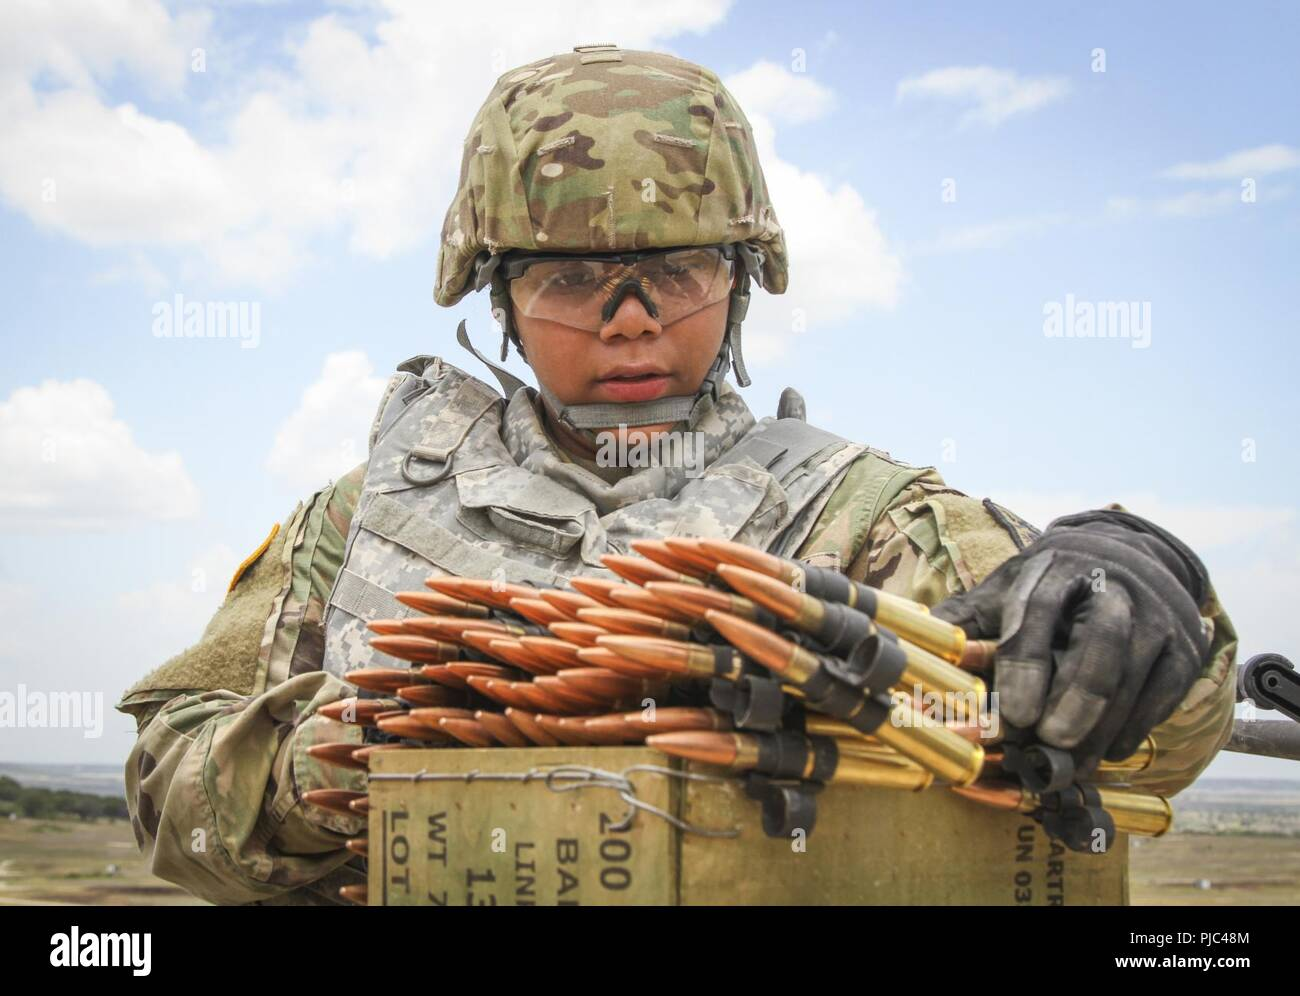 415th Chemical Brigade High Resolution Stock Photography And Images Alamy